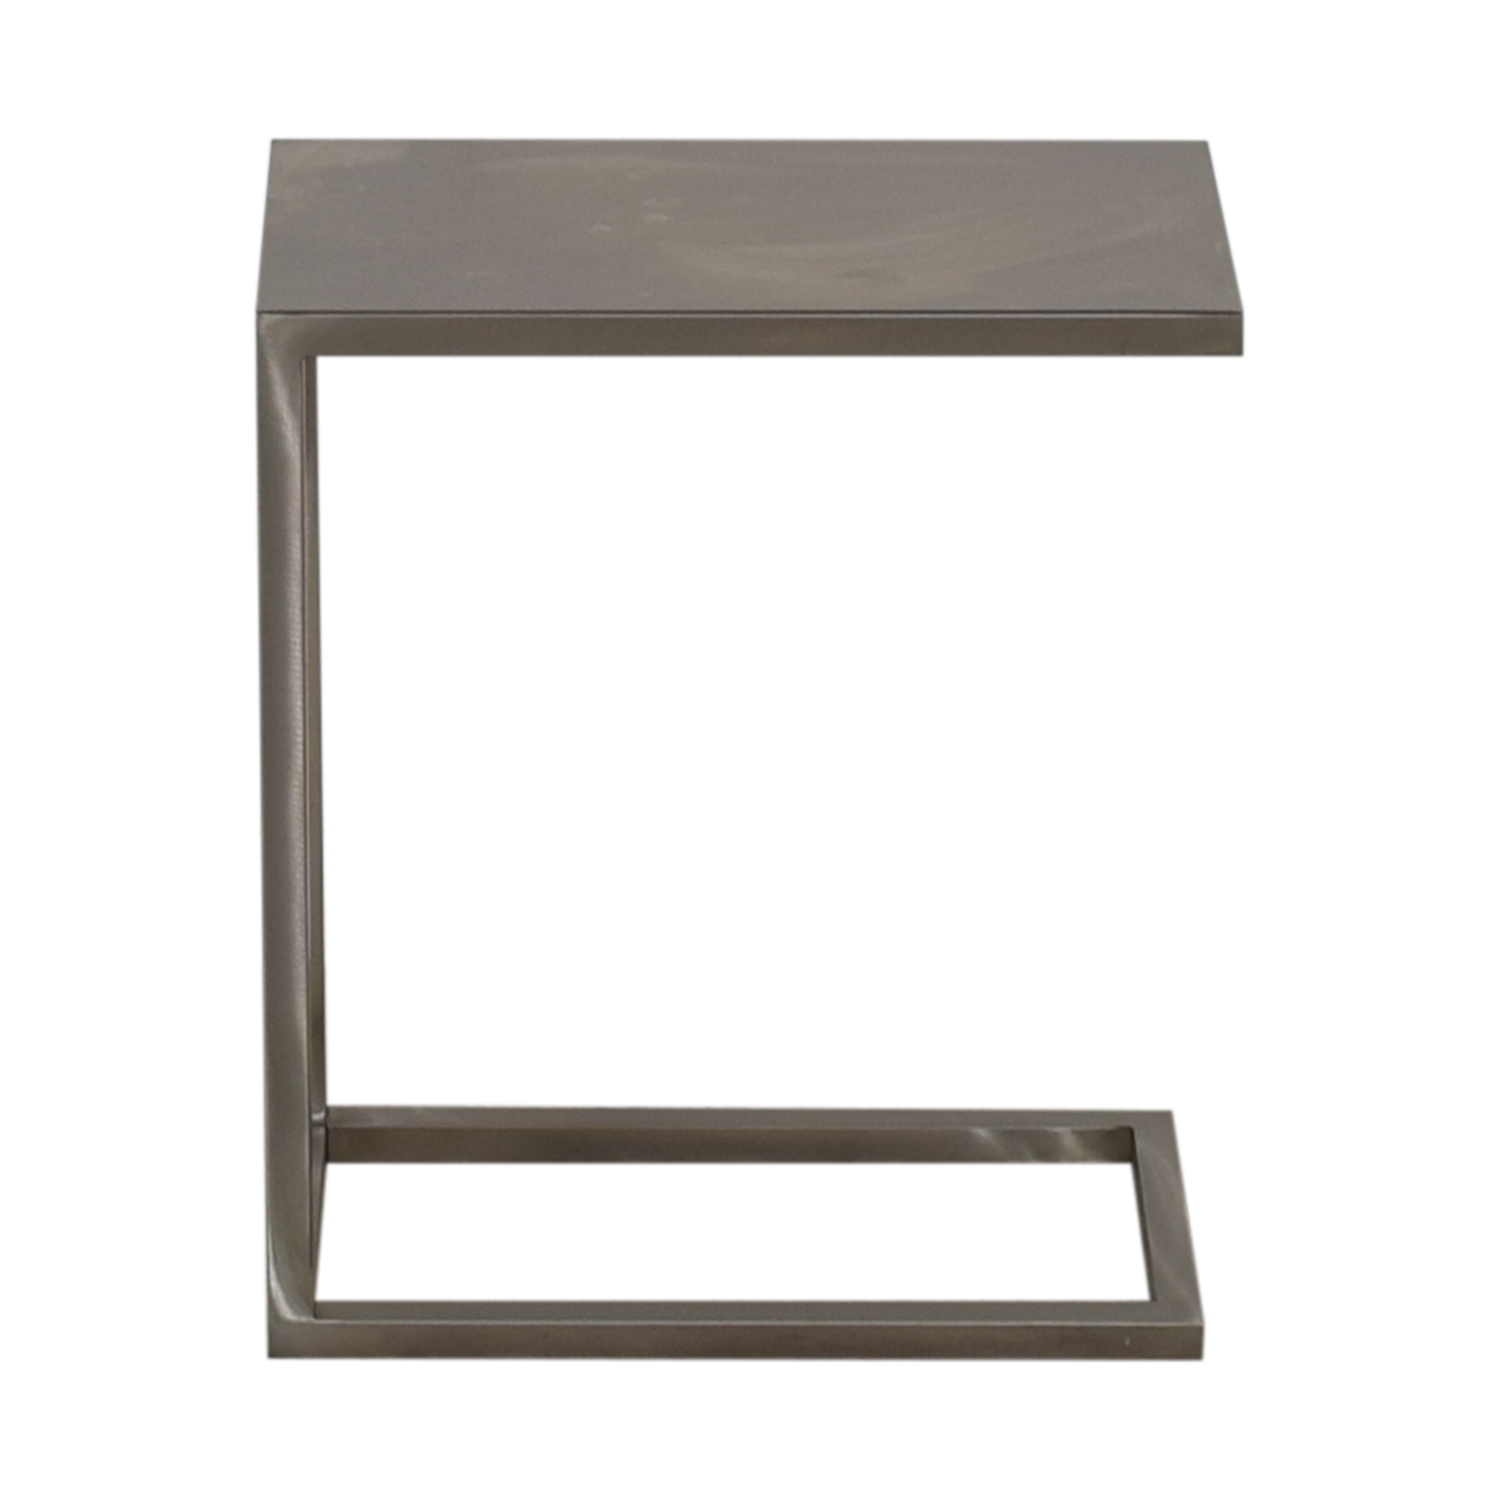 Crate & Barrel Crate & Barrel Silver Glass Side Table price